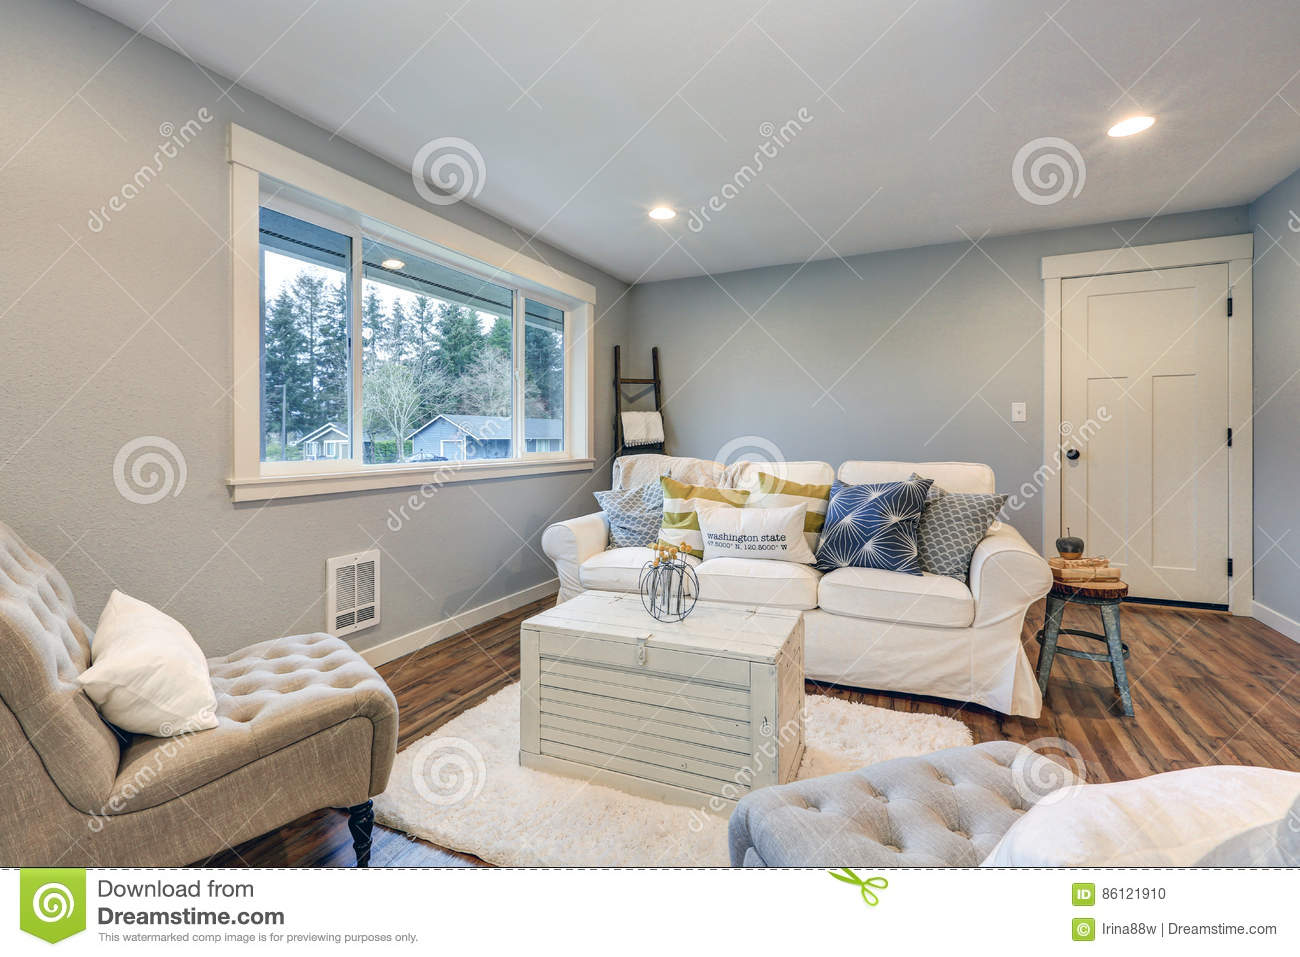 Grey White And Blue Living Room Cozy Living Room Space With Soft Blue Grey Walls Stock Photo